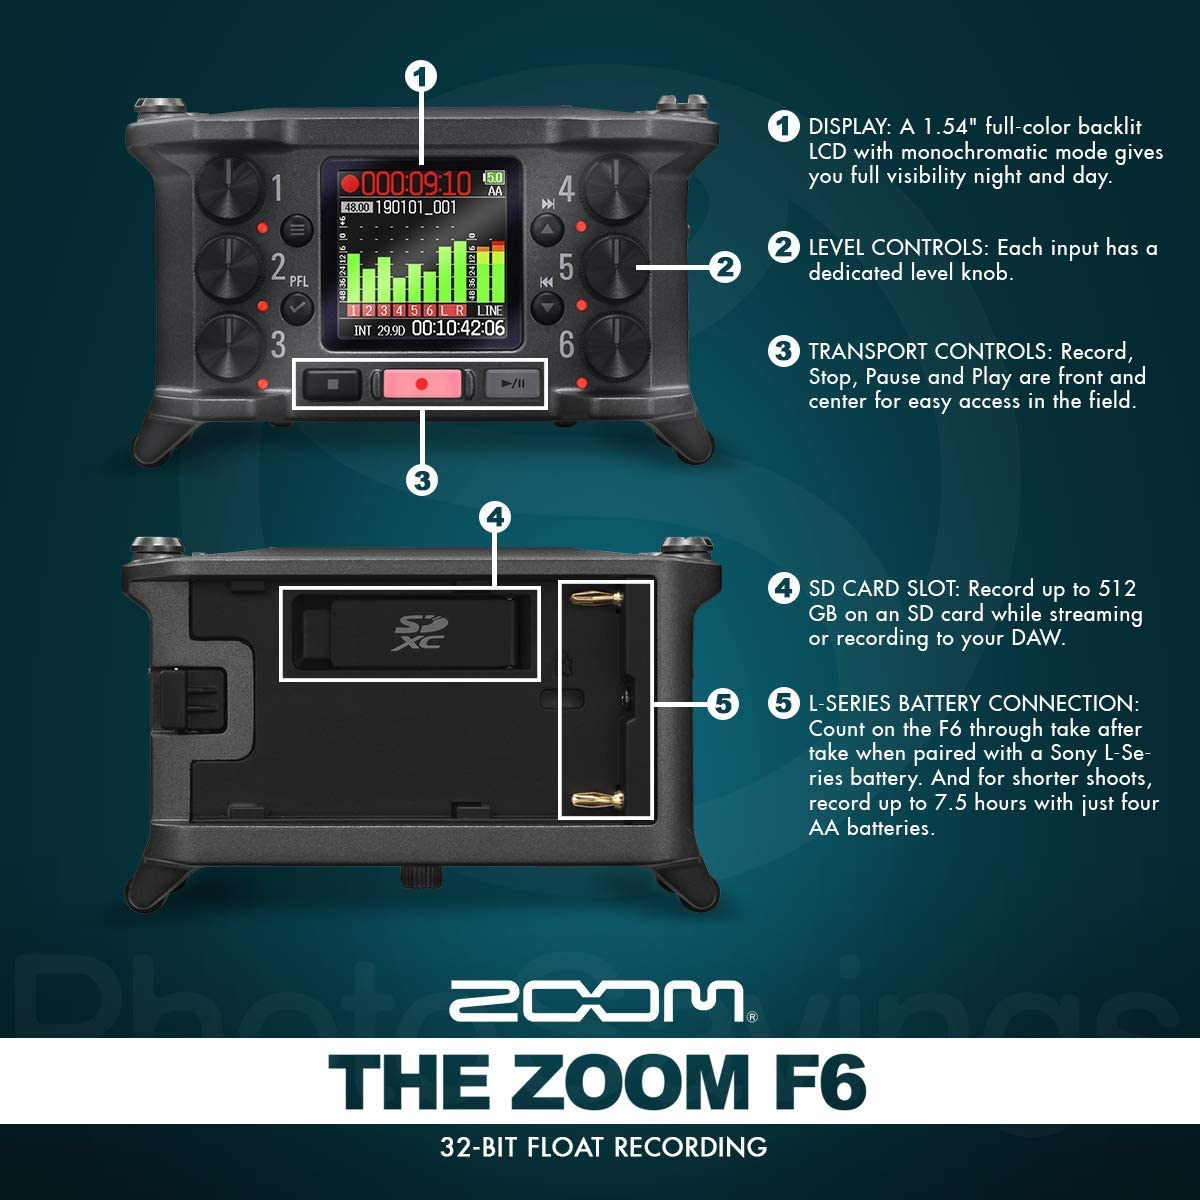 Zoom F6 6-Input / 14 Track Multi-Track Ultra-Compact Field Recorder + Q6 Dynamic Handheld Microphone and SR360 Over-Ear Dynamic Stereo Headphones with Deluxe Accessories Package: Amazon.es: Instrumentos musicales